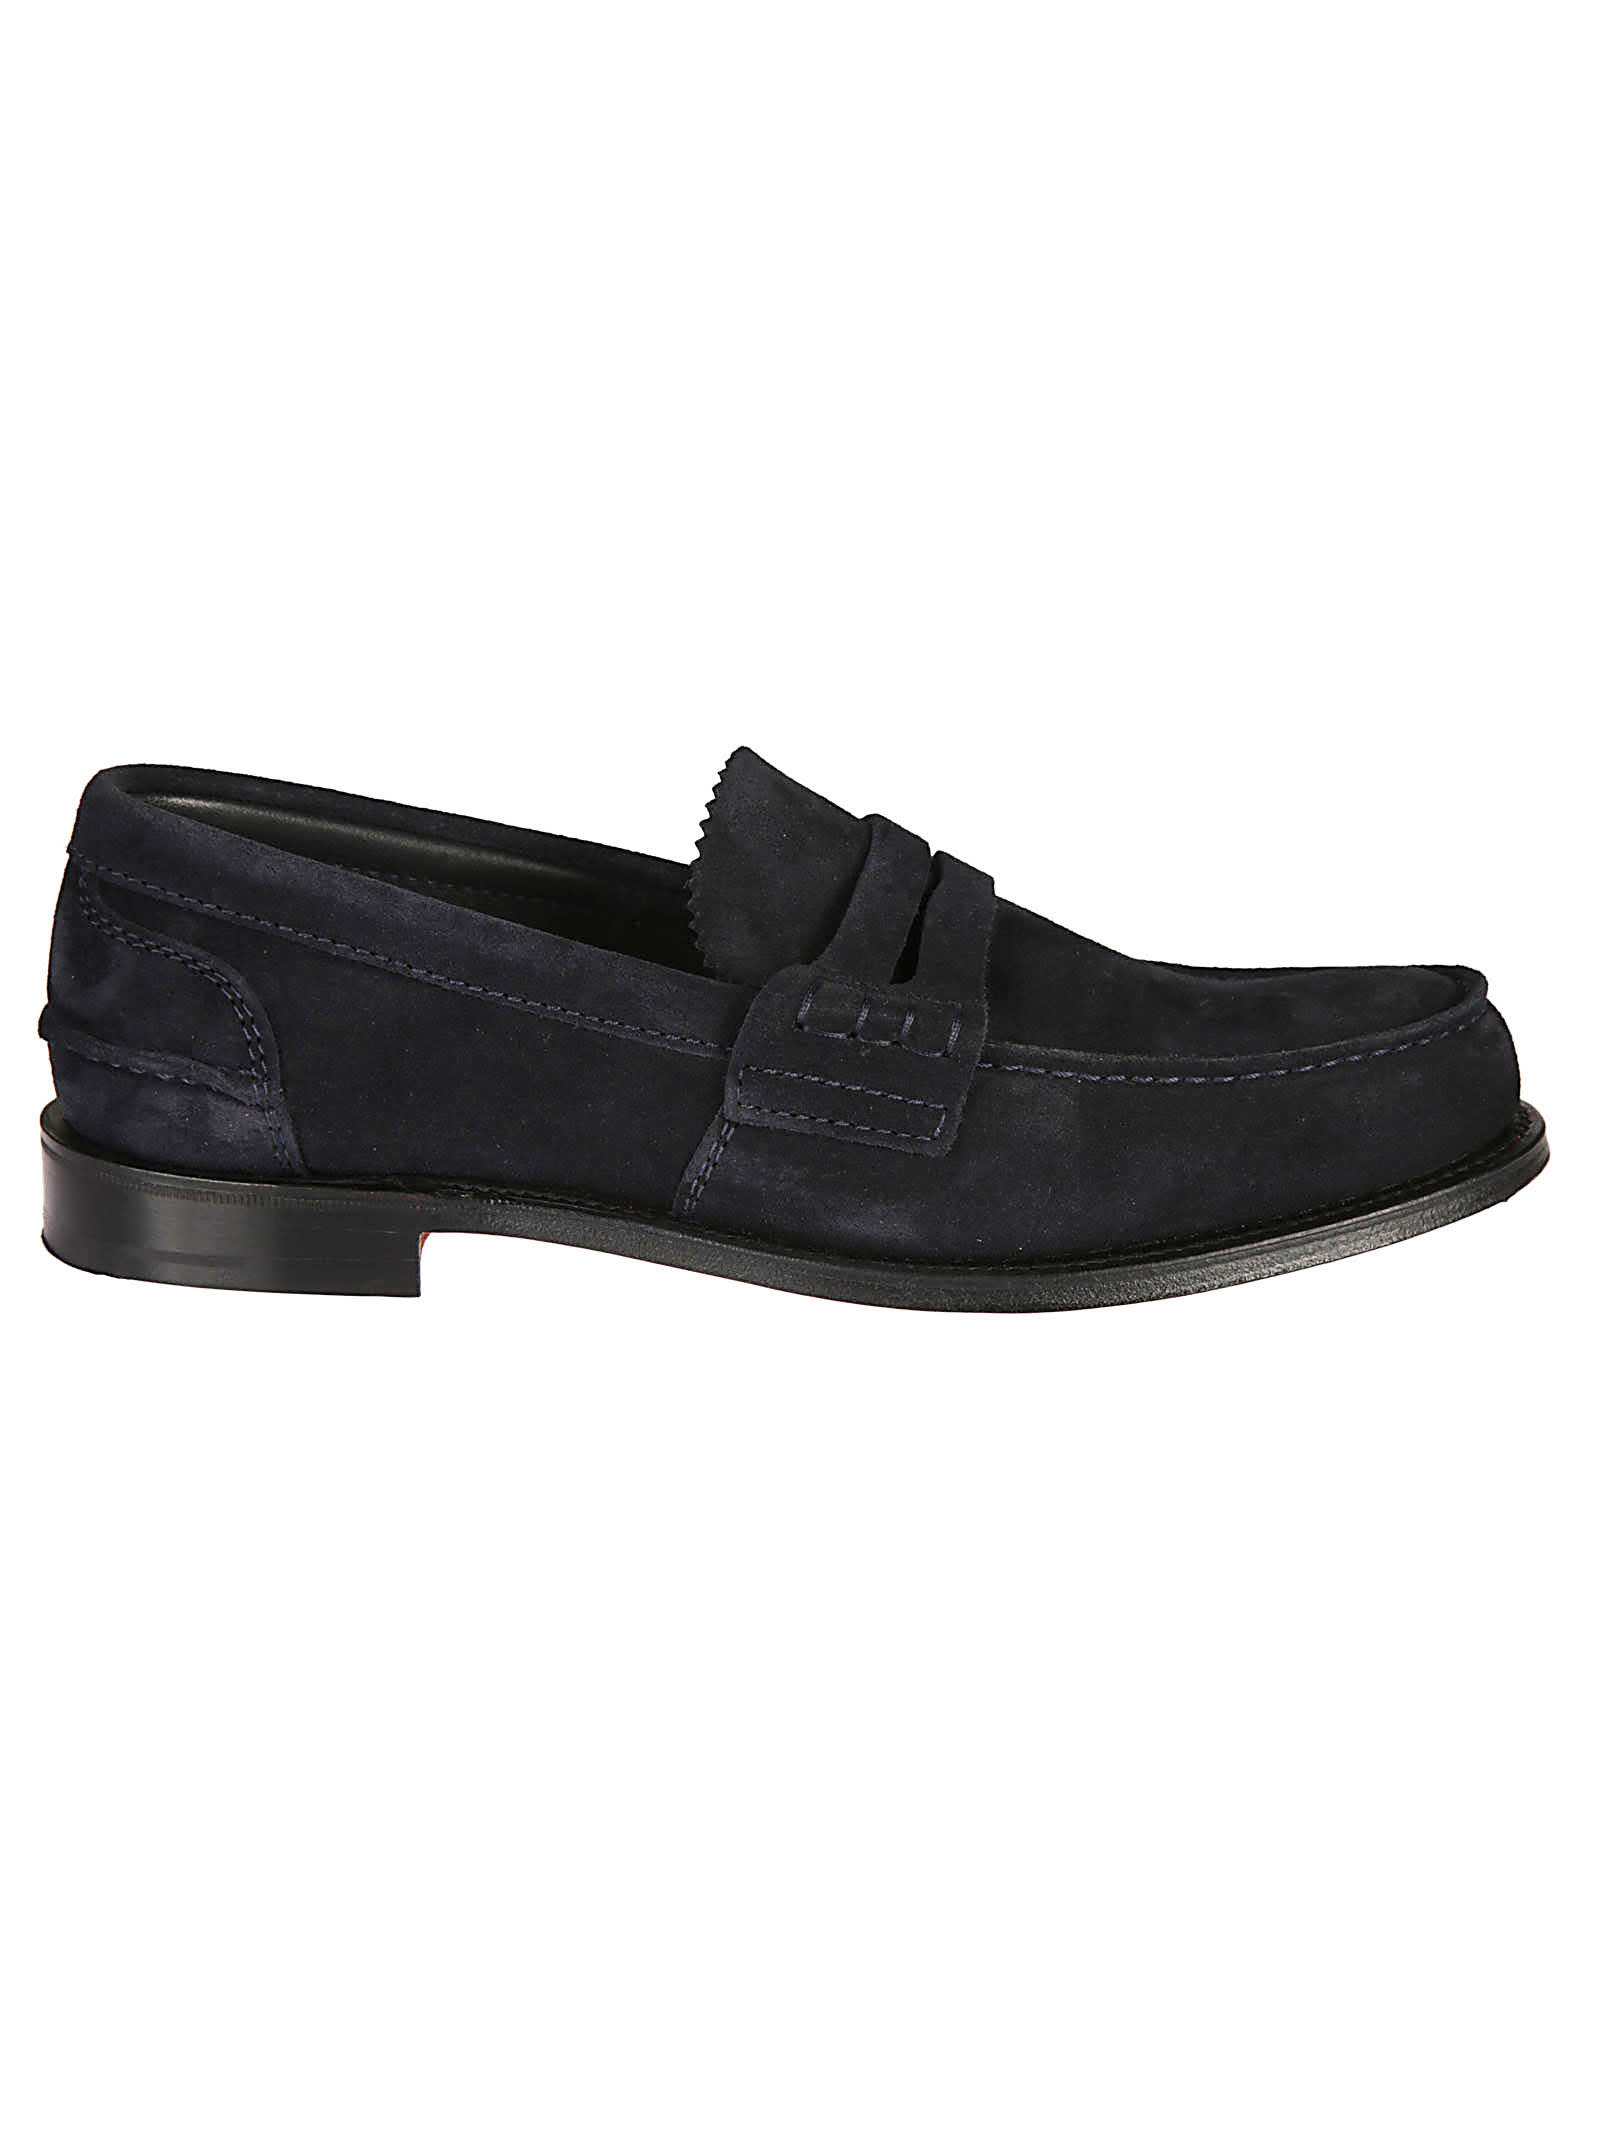 Churchs Classic Loafers